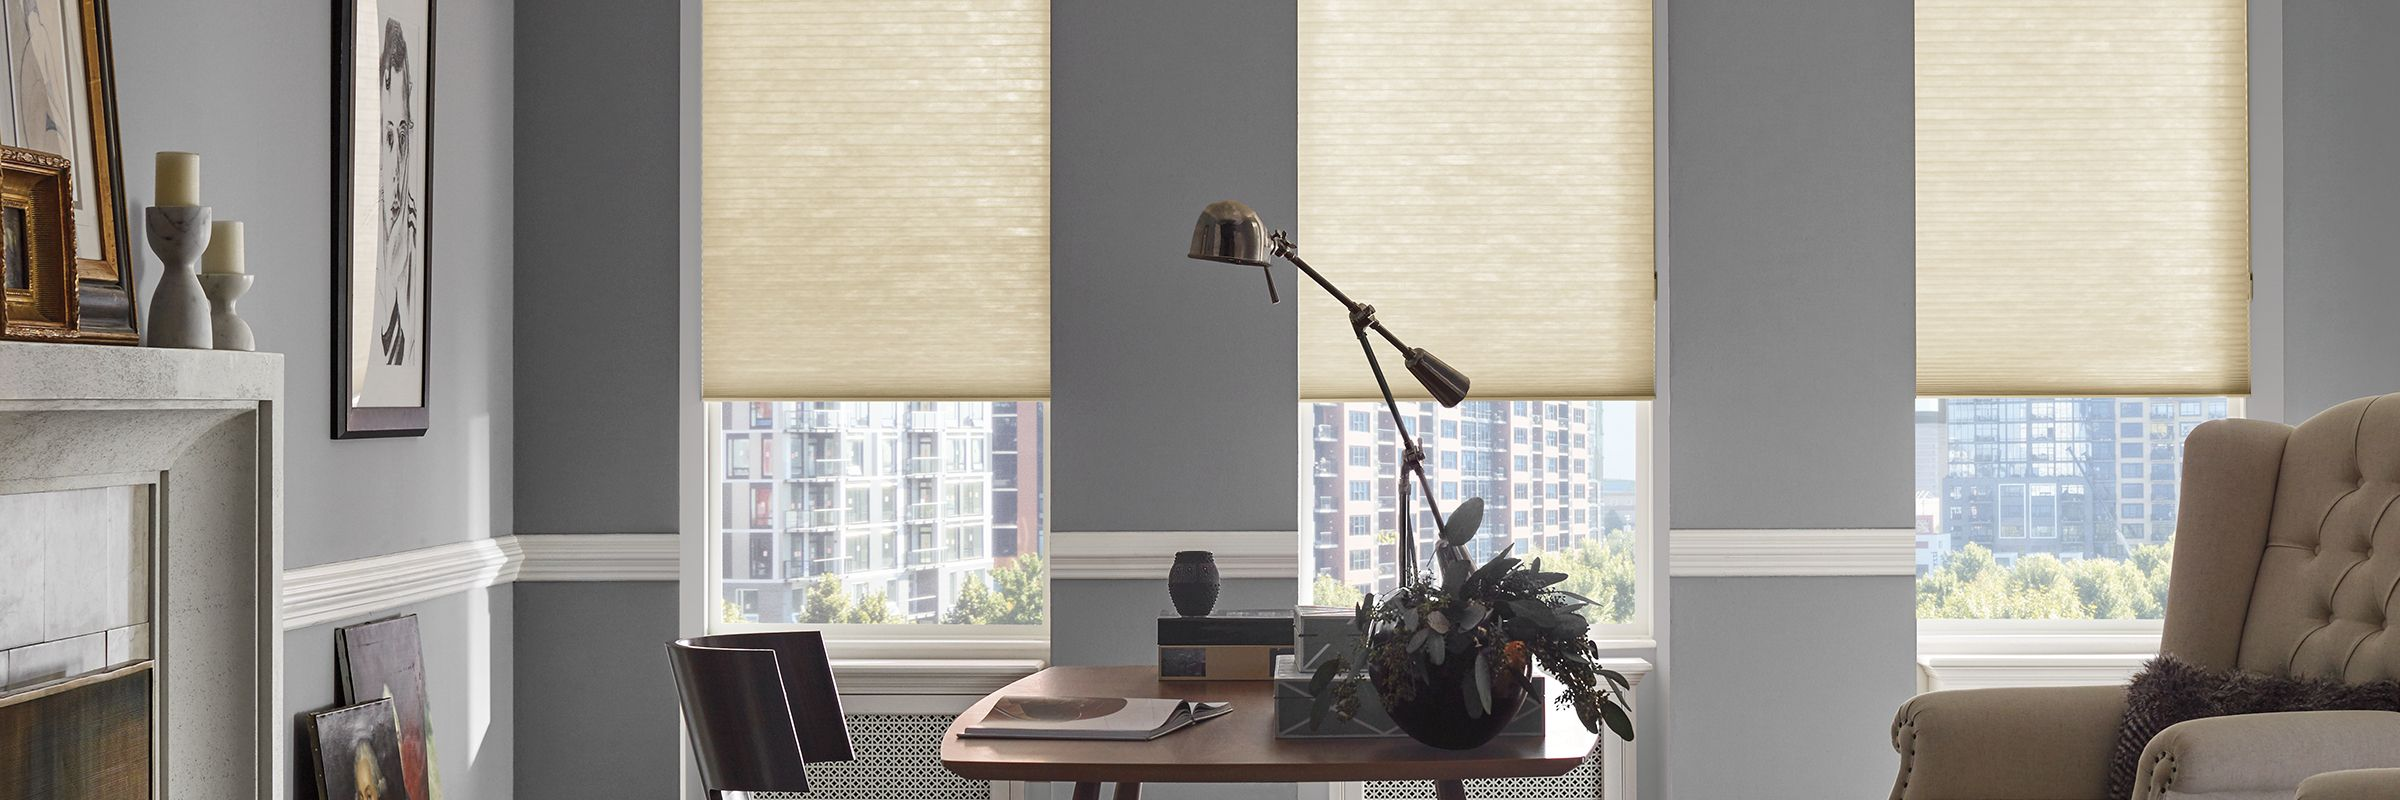 Applause honeycomb shades in Kinship Sunlight